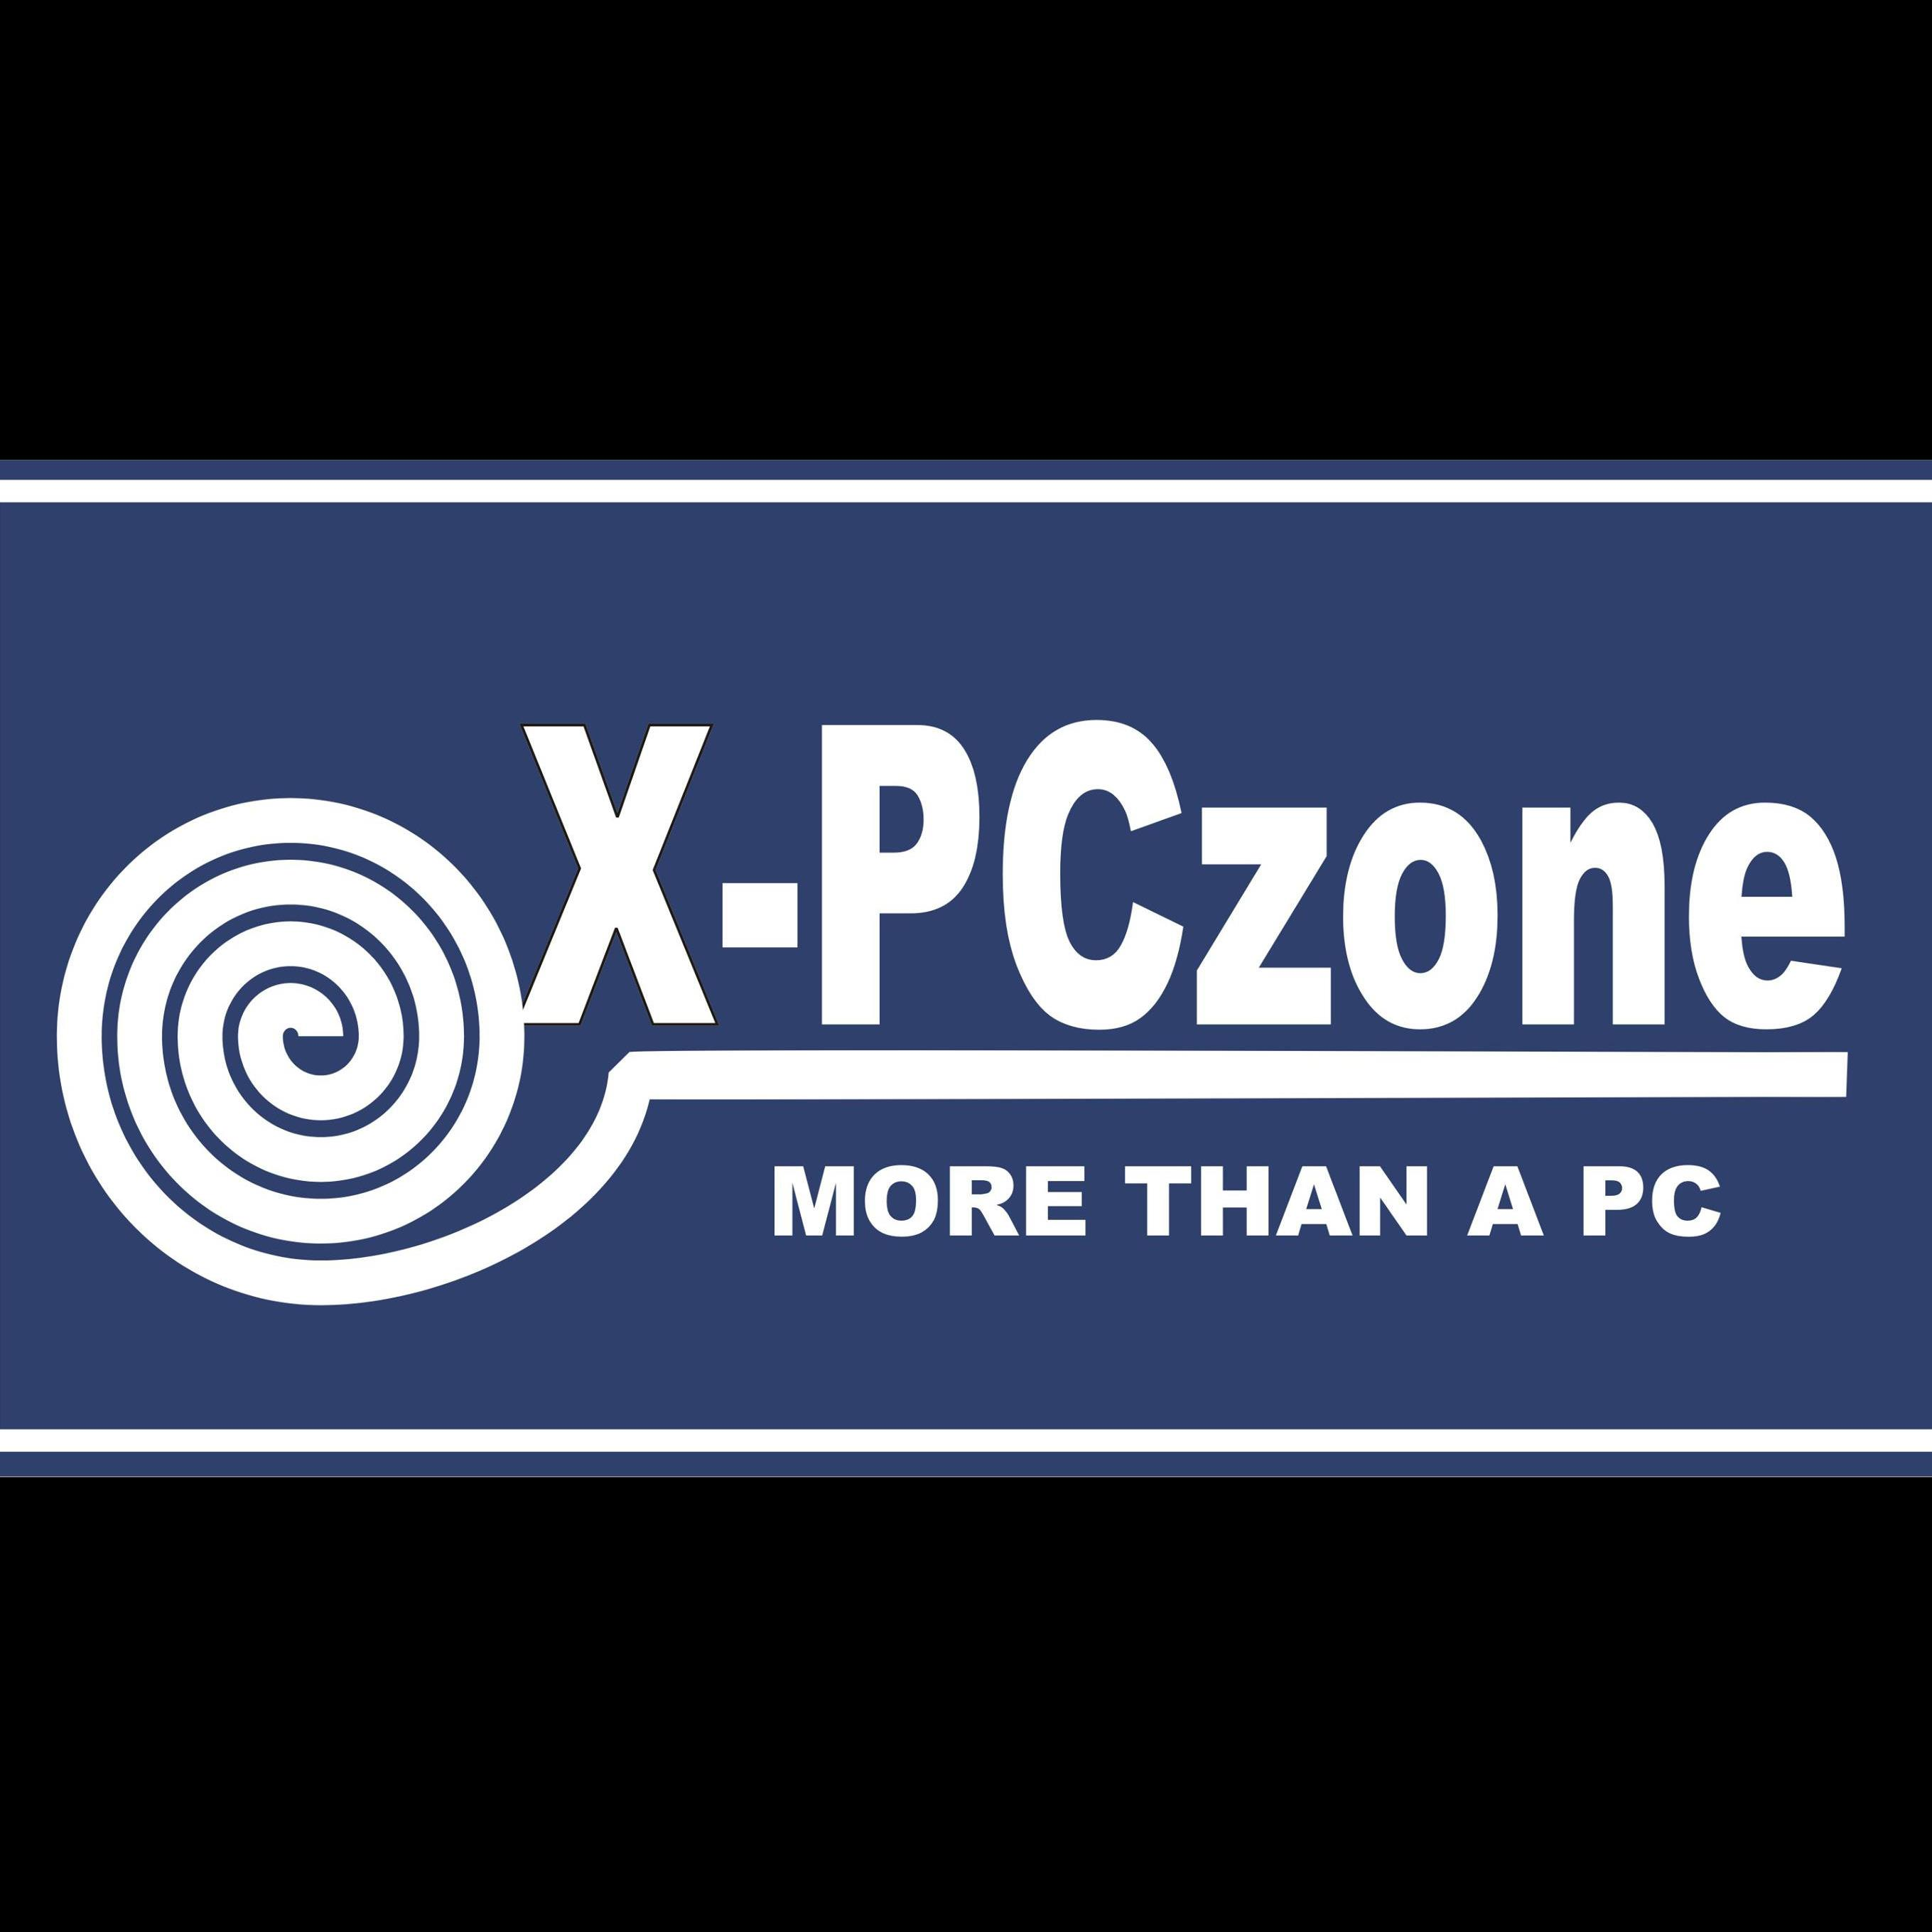 X-PCzone Computer and Phone Repair - Montebello, CA - Computer & Electronic Stores